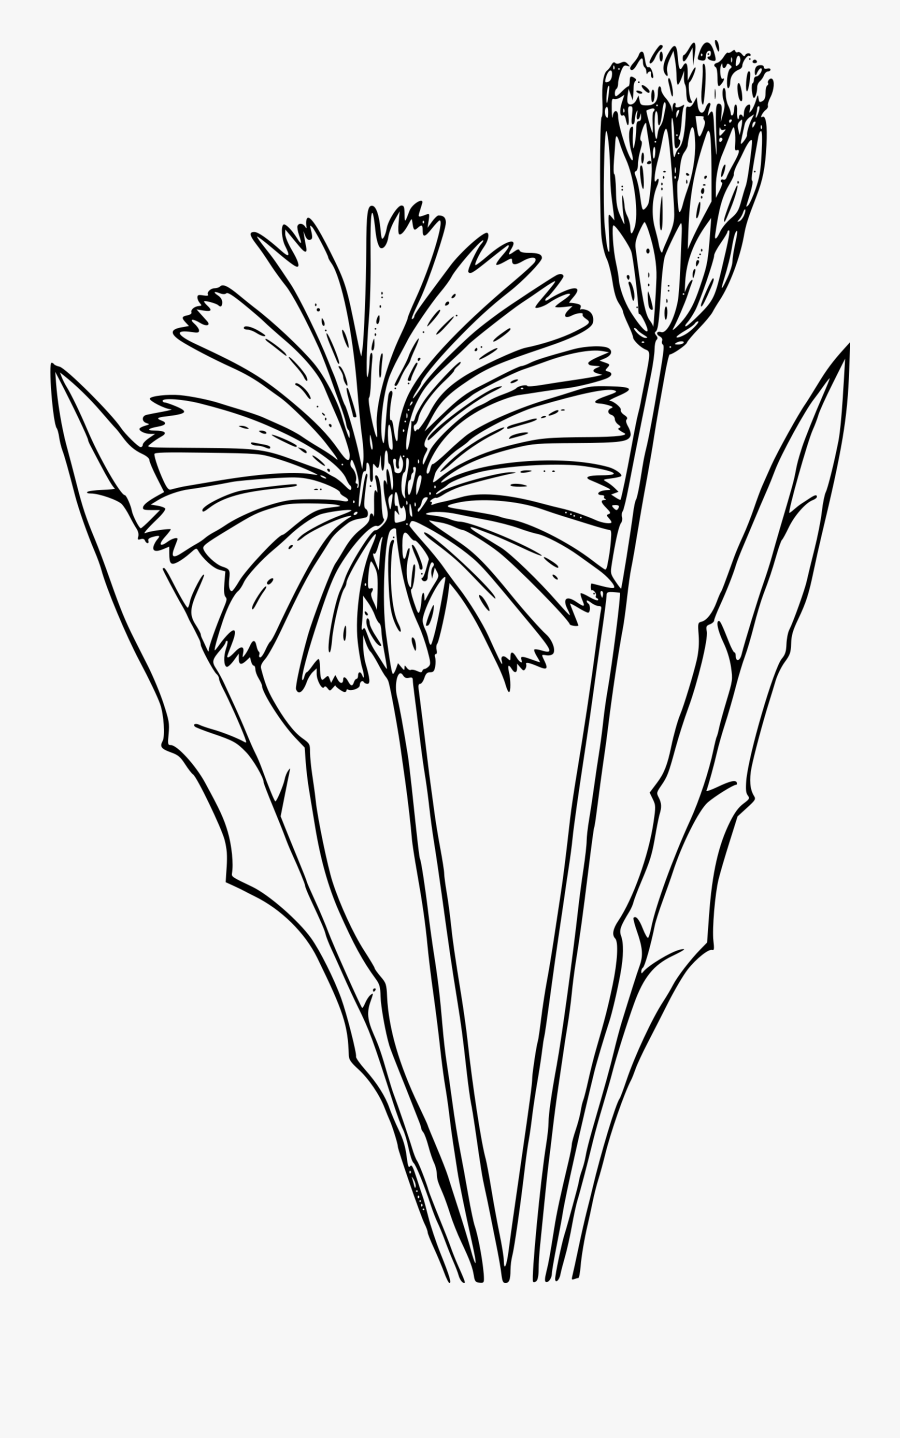 how to draw a goldenrod flower goldenrod flower drawing at getdrawings free download goldenrod how draw flower a to